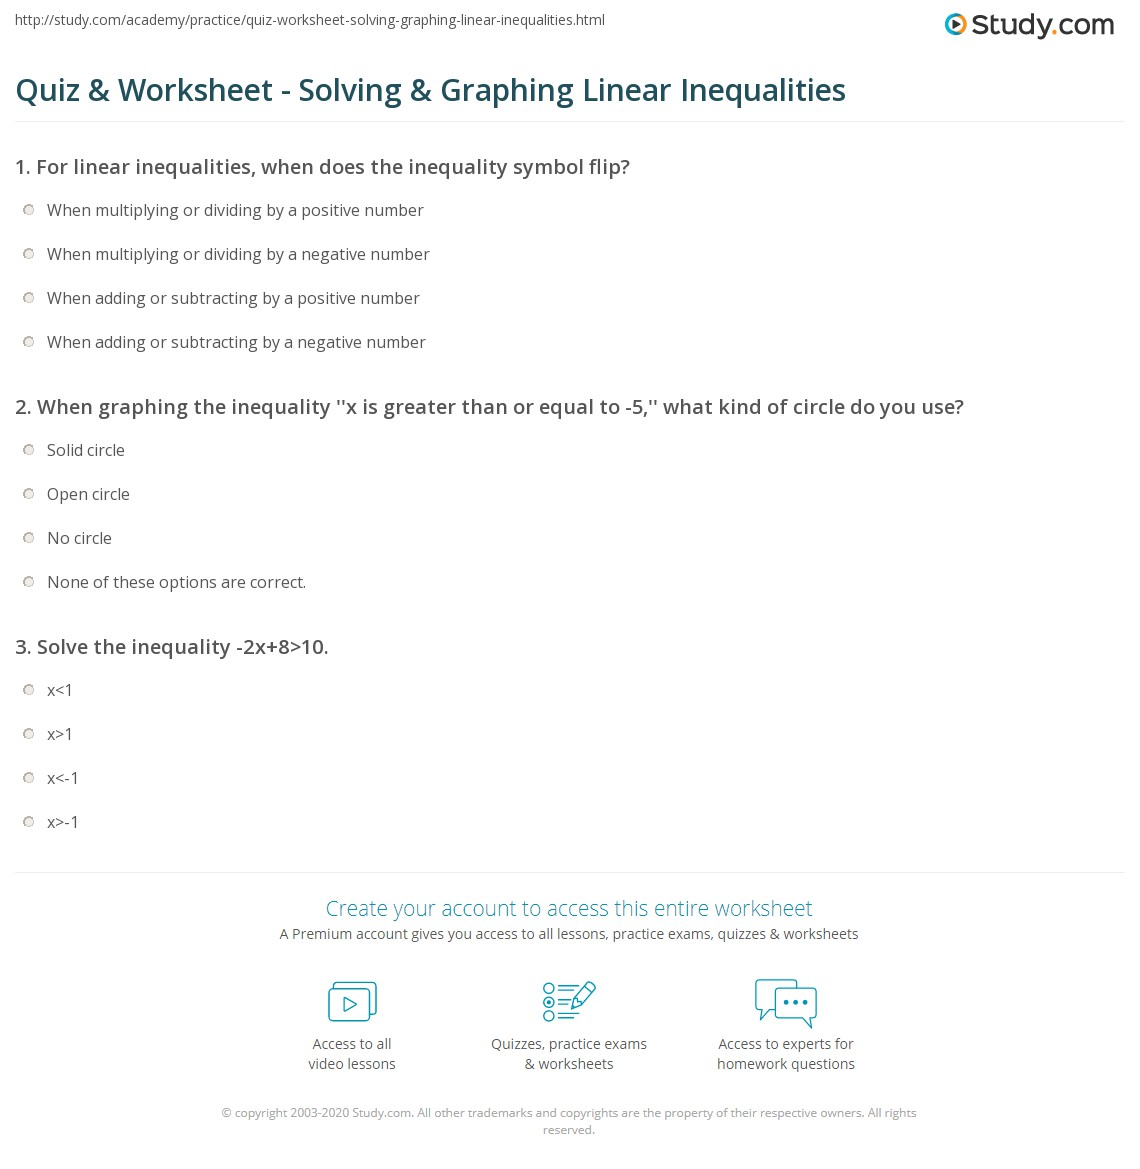 worksheet Solving And Graphing Inequalities Worksheet Pdf quiz worksheet solving graphing linear inequalities study com print inequality problems worksheet